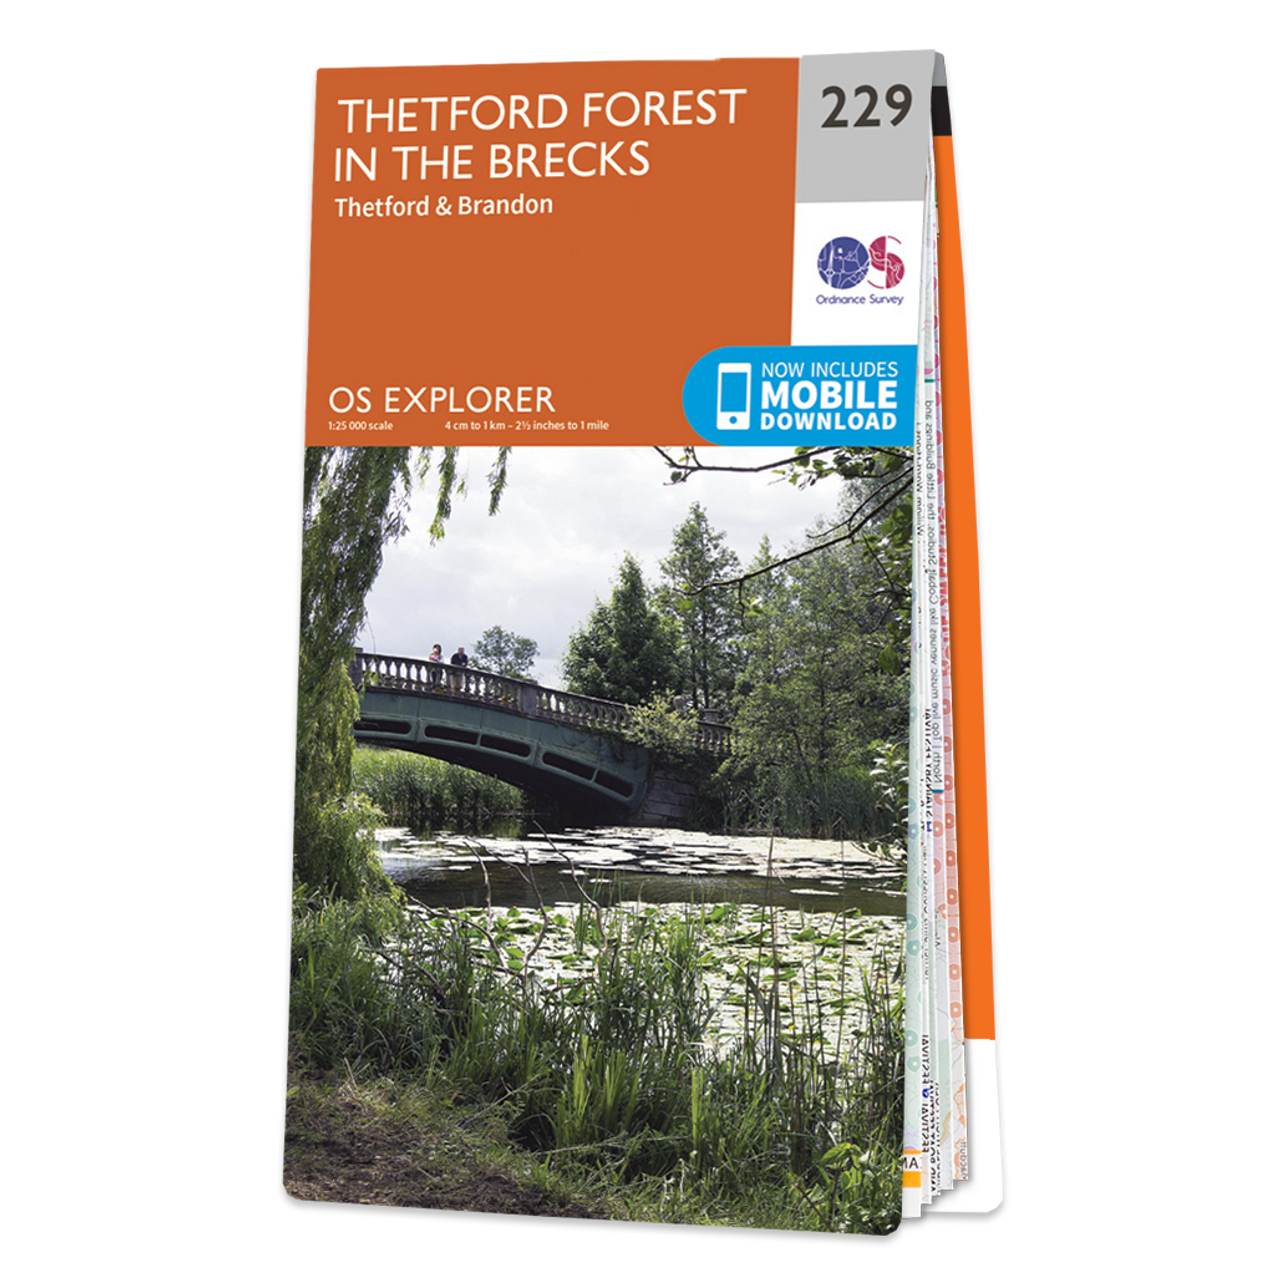 Map Of Thetford Forest In The Brecks